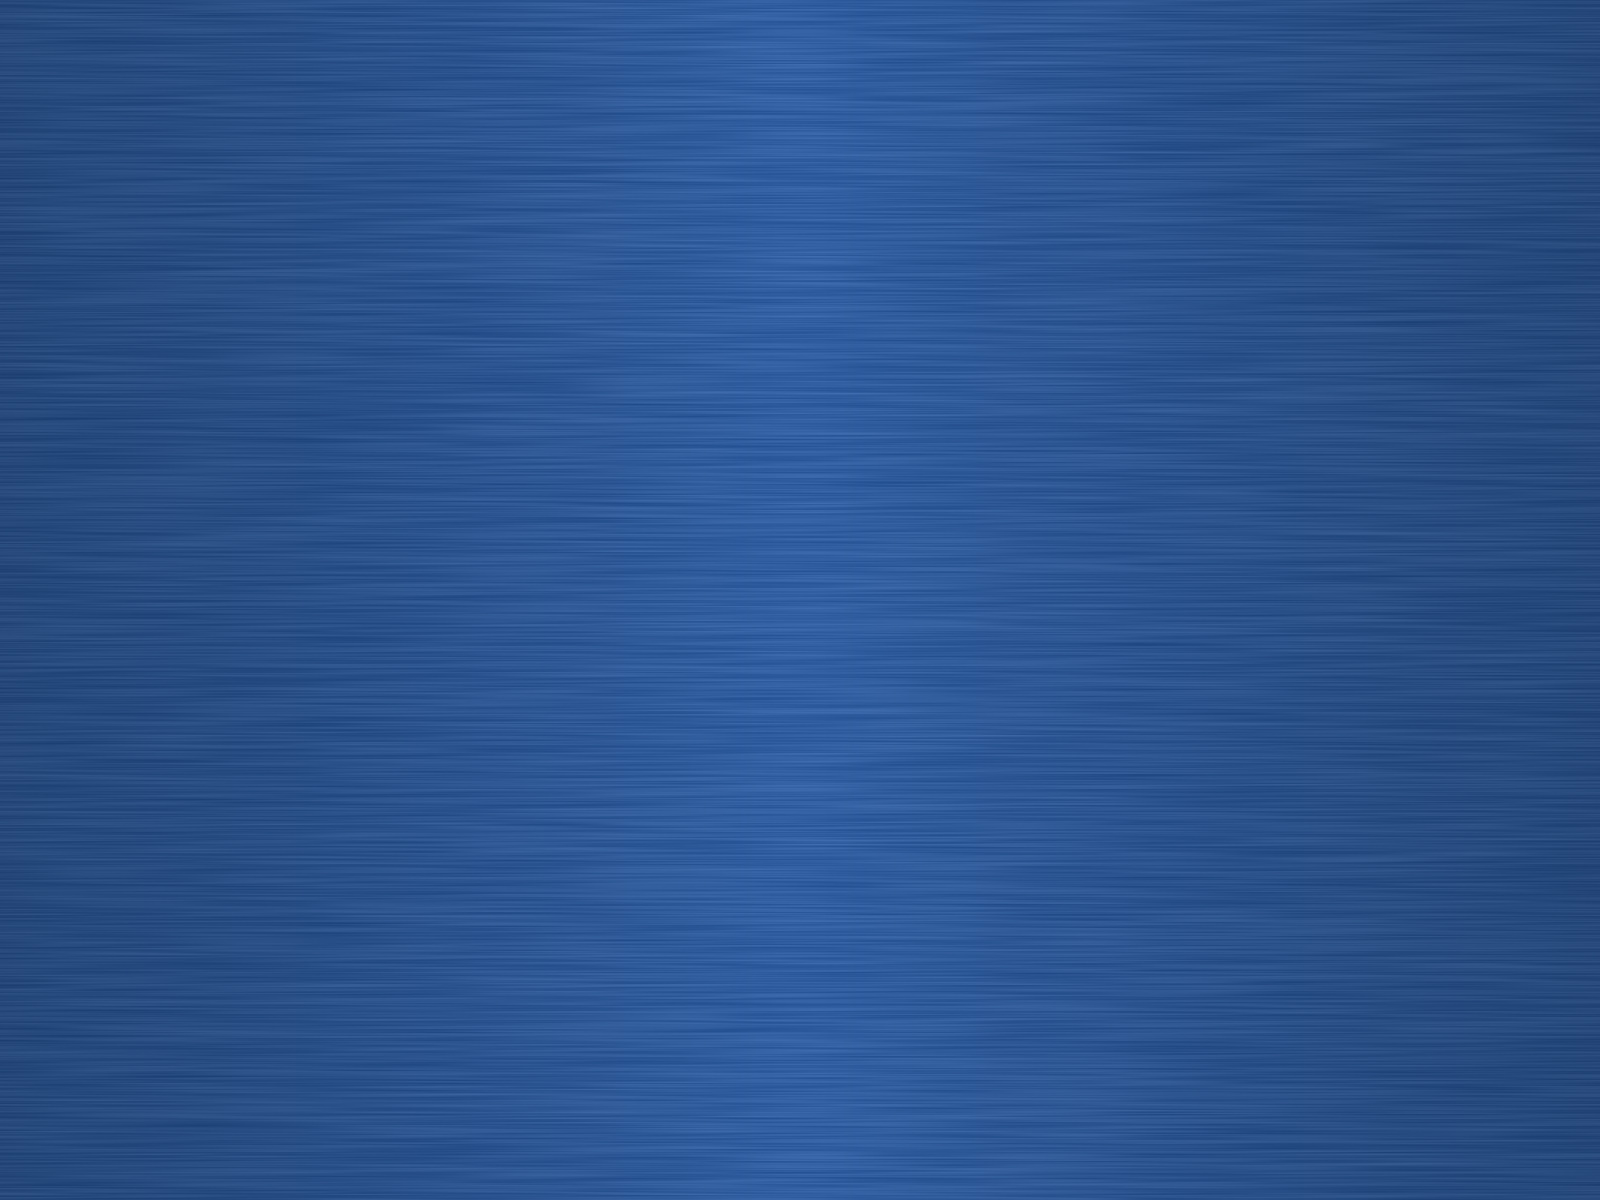 Brushed Metal Blue Wallpaper Galerie MacTechNewsde 1600x1200